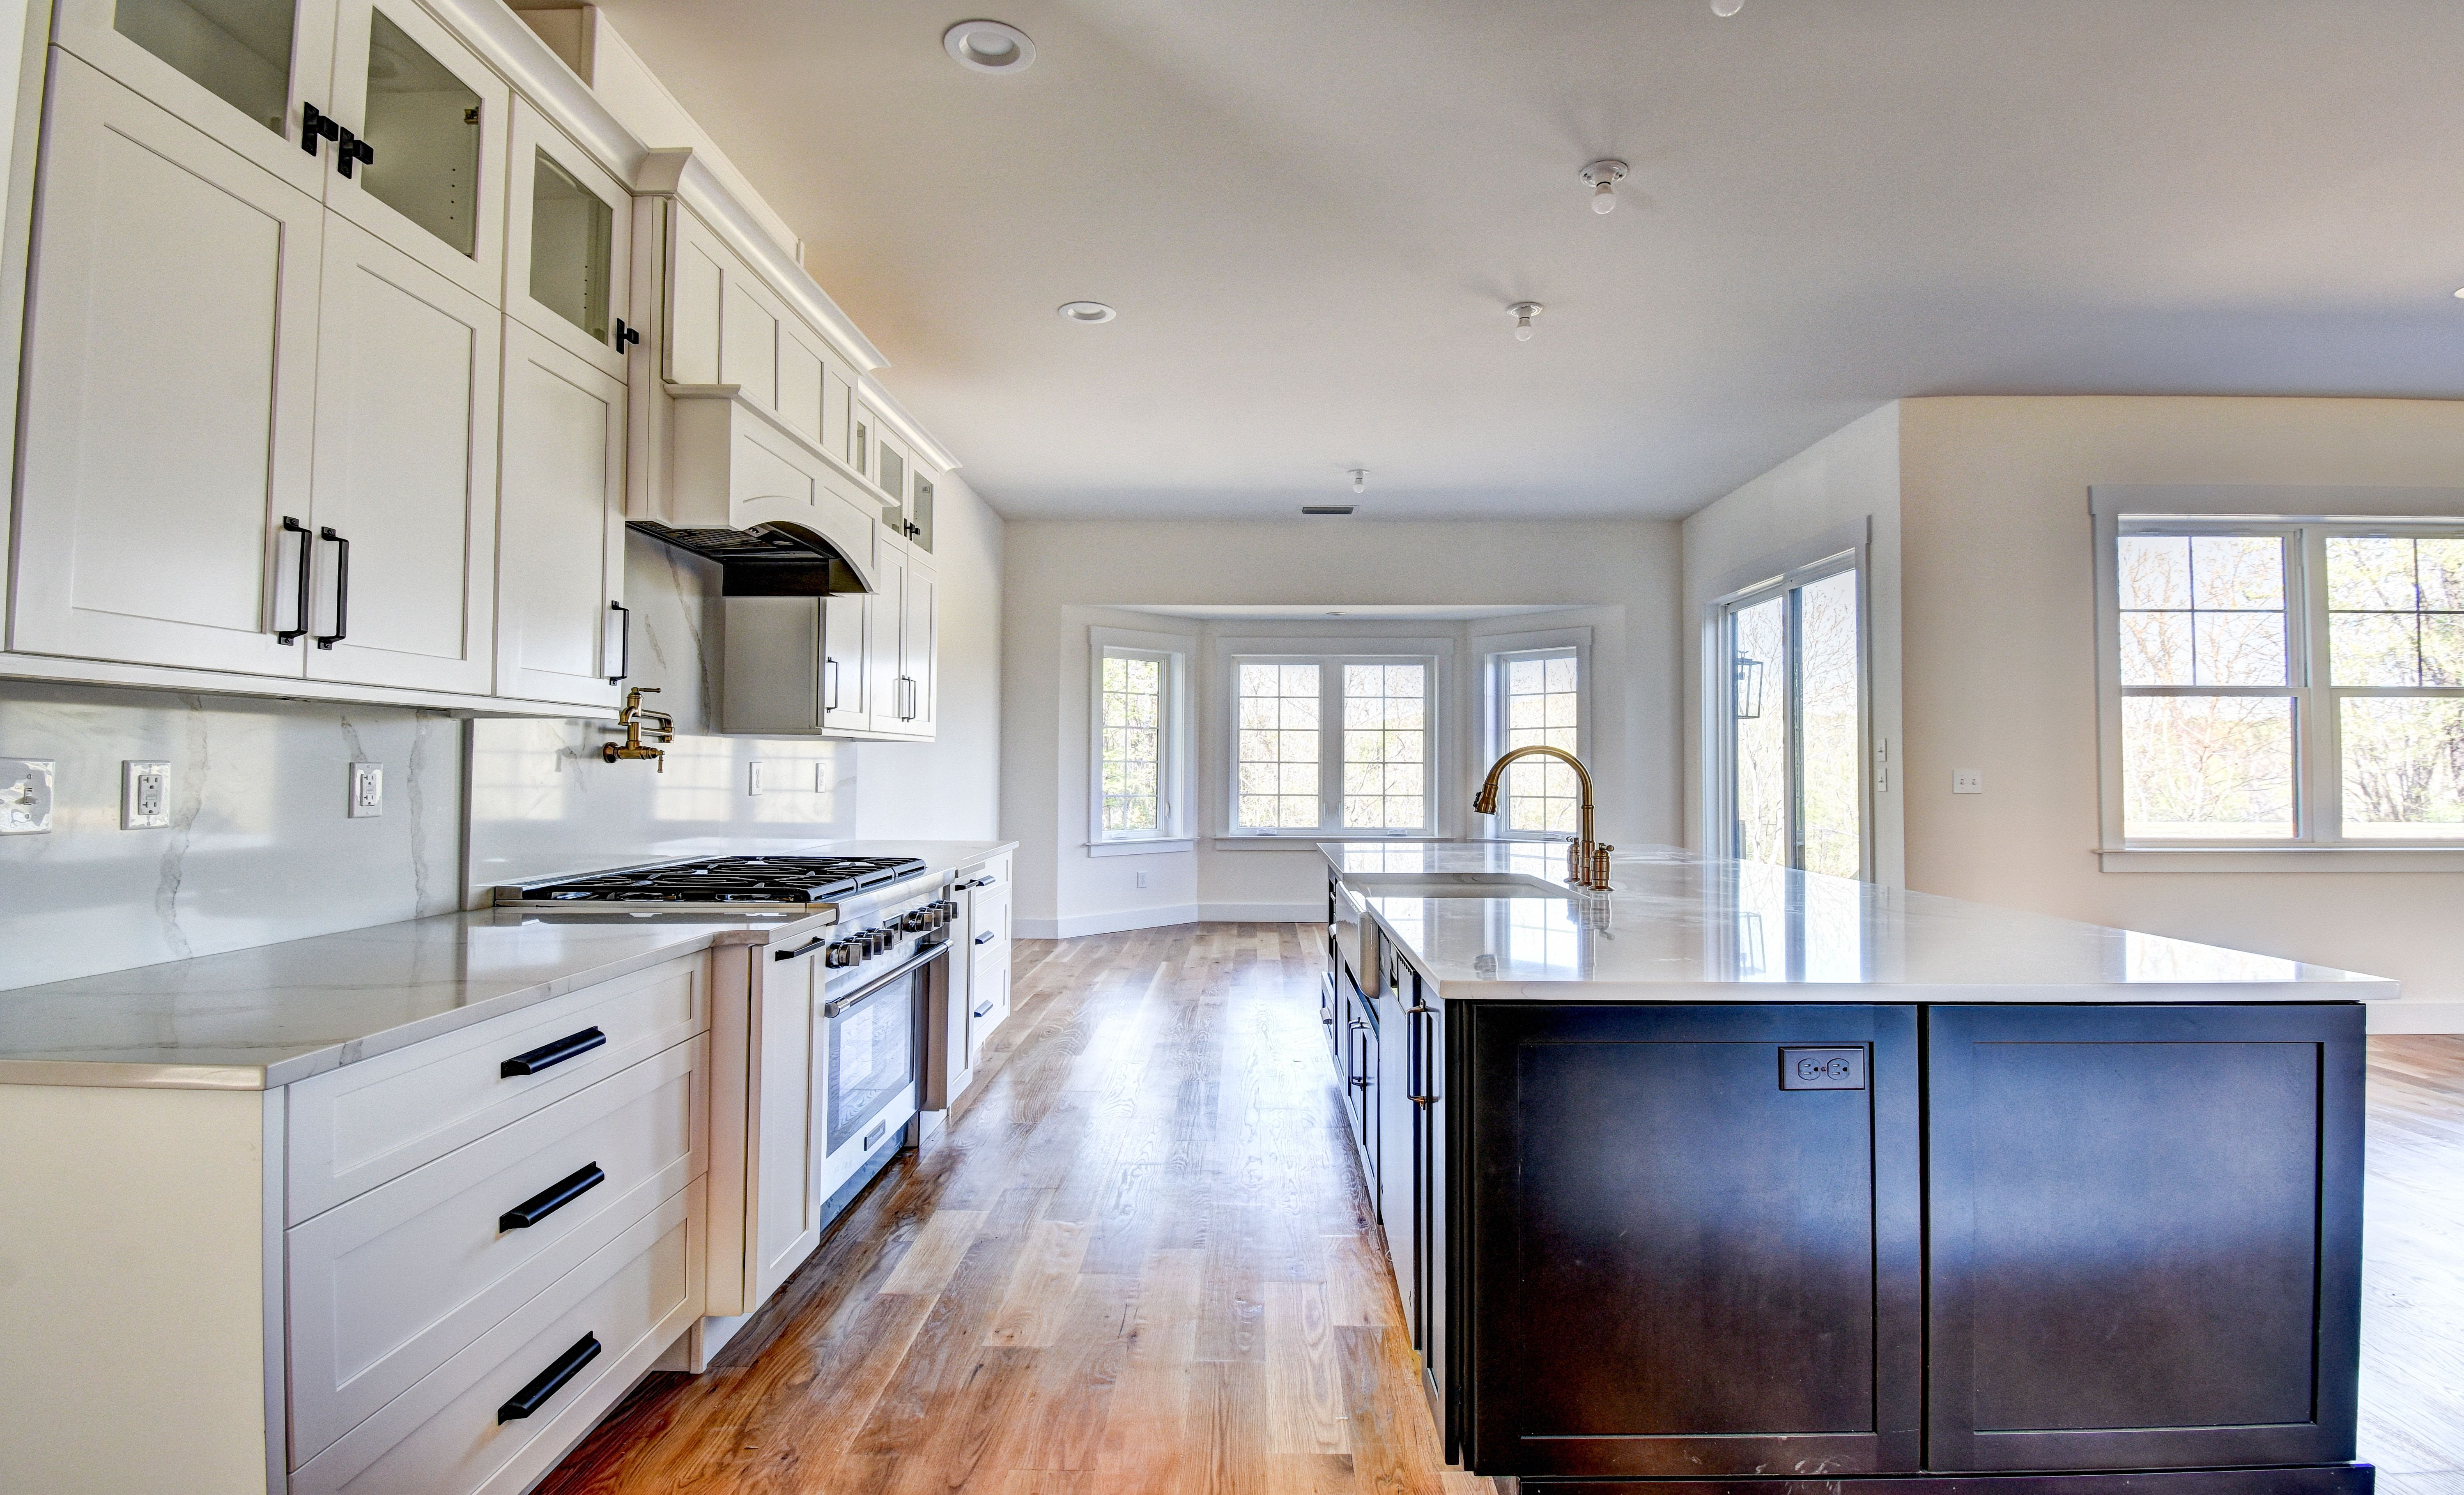 Kitchen featured in The Macallan Ranch By Rand Realty in Orange County, NY